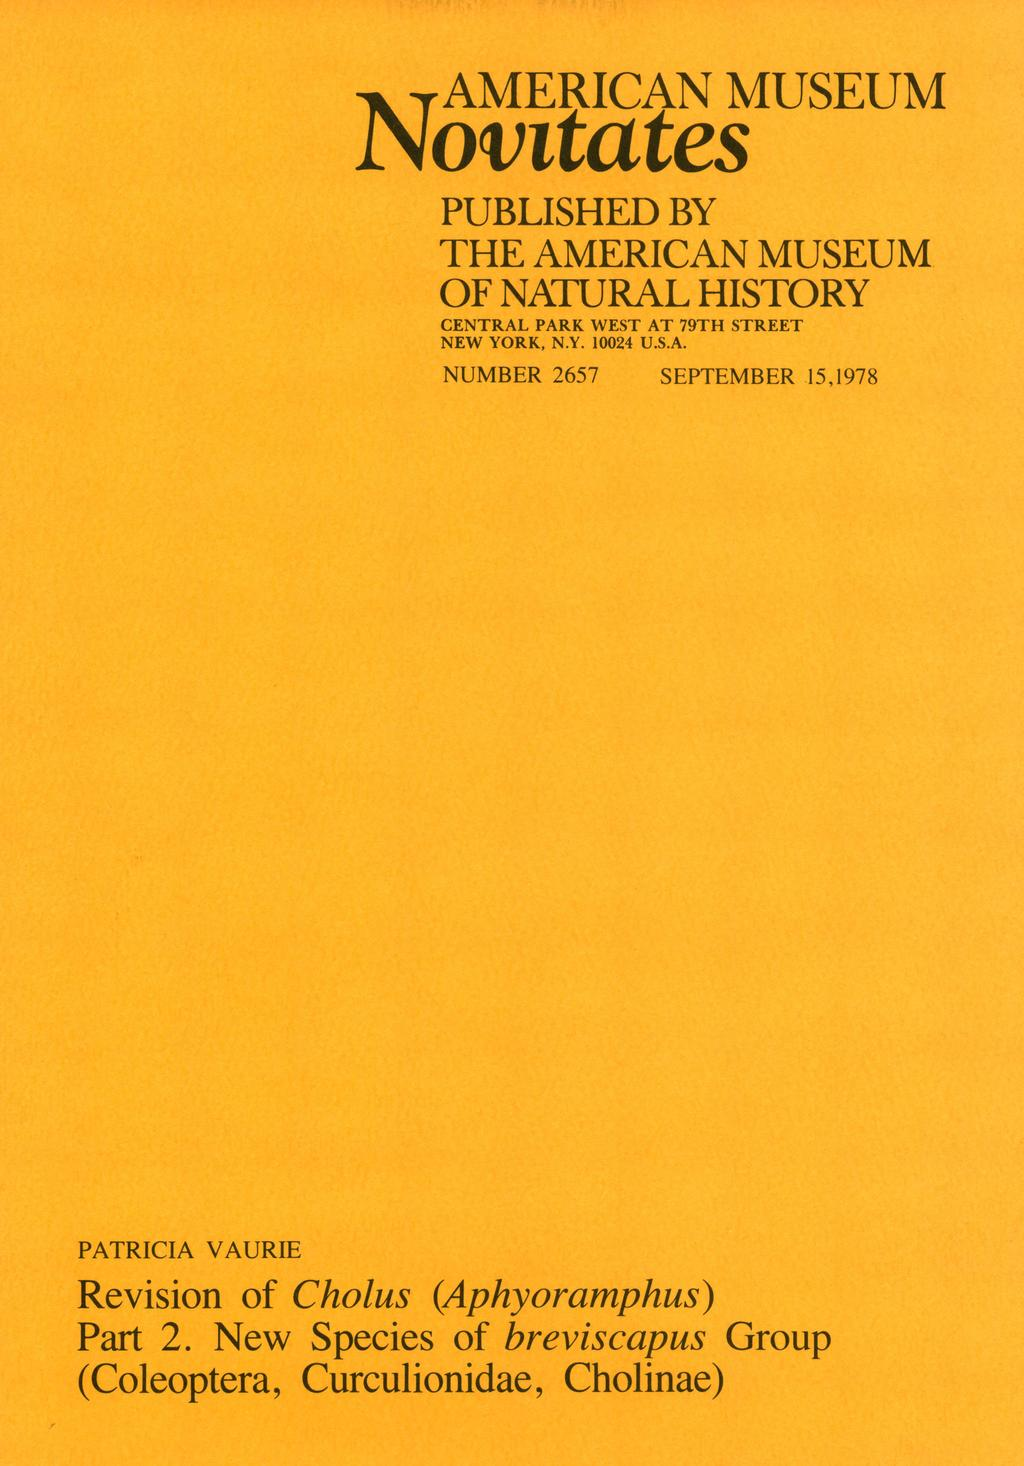 AMERICAN MUSEUM Novitates PUBLISHED BY THE AMERICAN MUSEUM OF NATURAL HISTORY CENTRAL PARK WEST AT 79TH STREET NEW YORK, N.Y. 10024 U.S.A. NUMBER 2657 SEPTEMBER 15,1978 PATRICIA VAURIE Revision of Cholus (Aphyoramphus) Part 2.